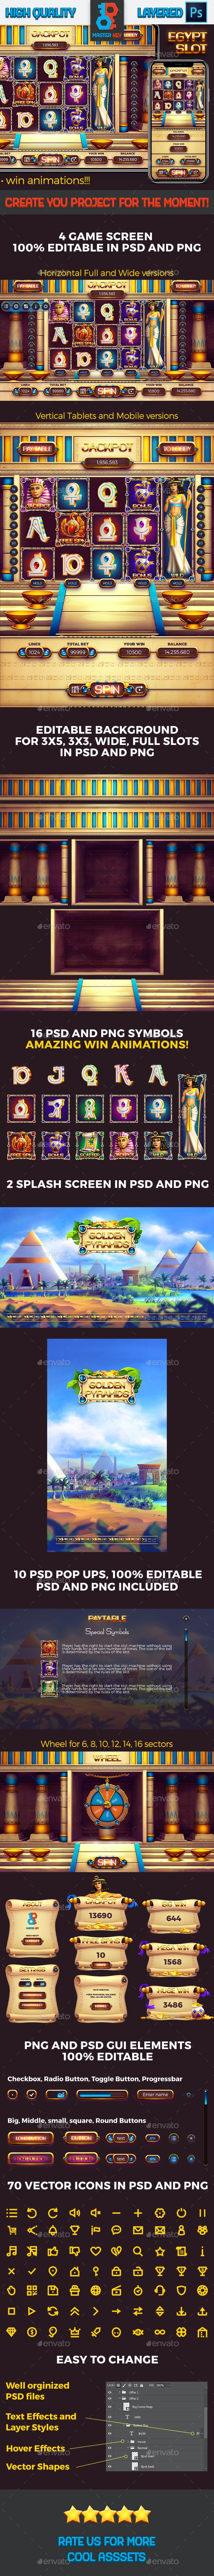 Golden Pyramid Egypt Slot Game - Game Kits Game Assets